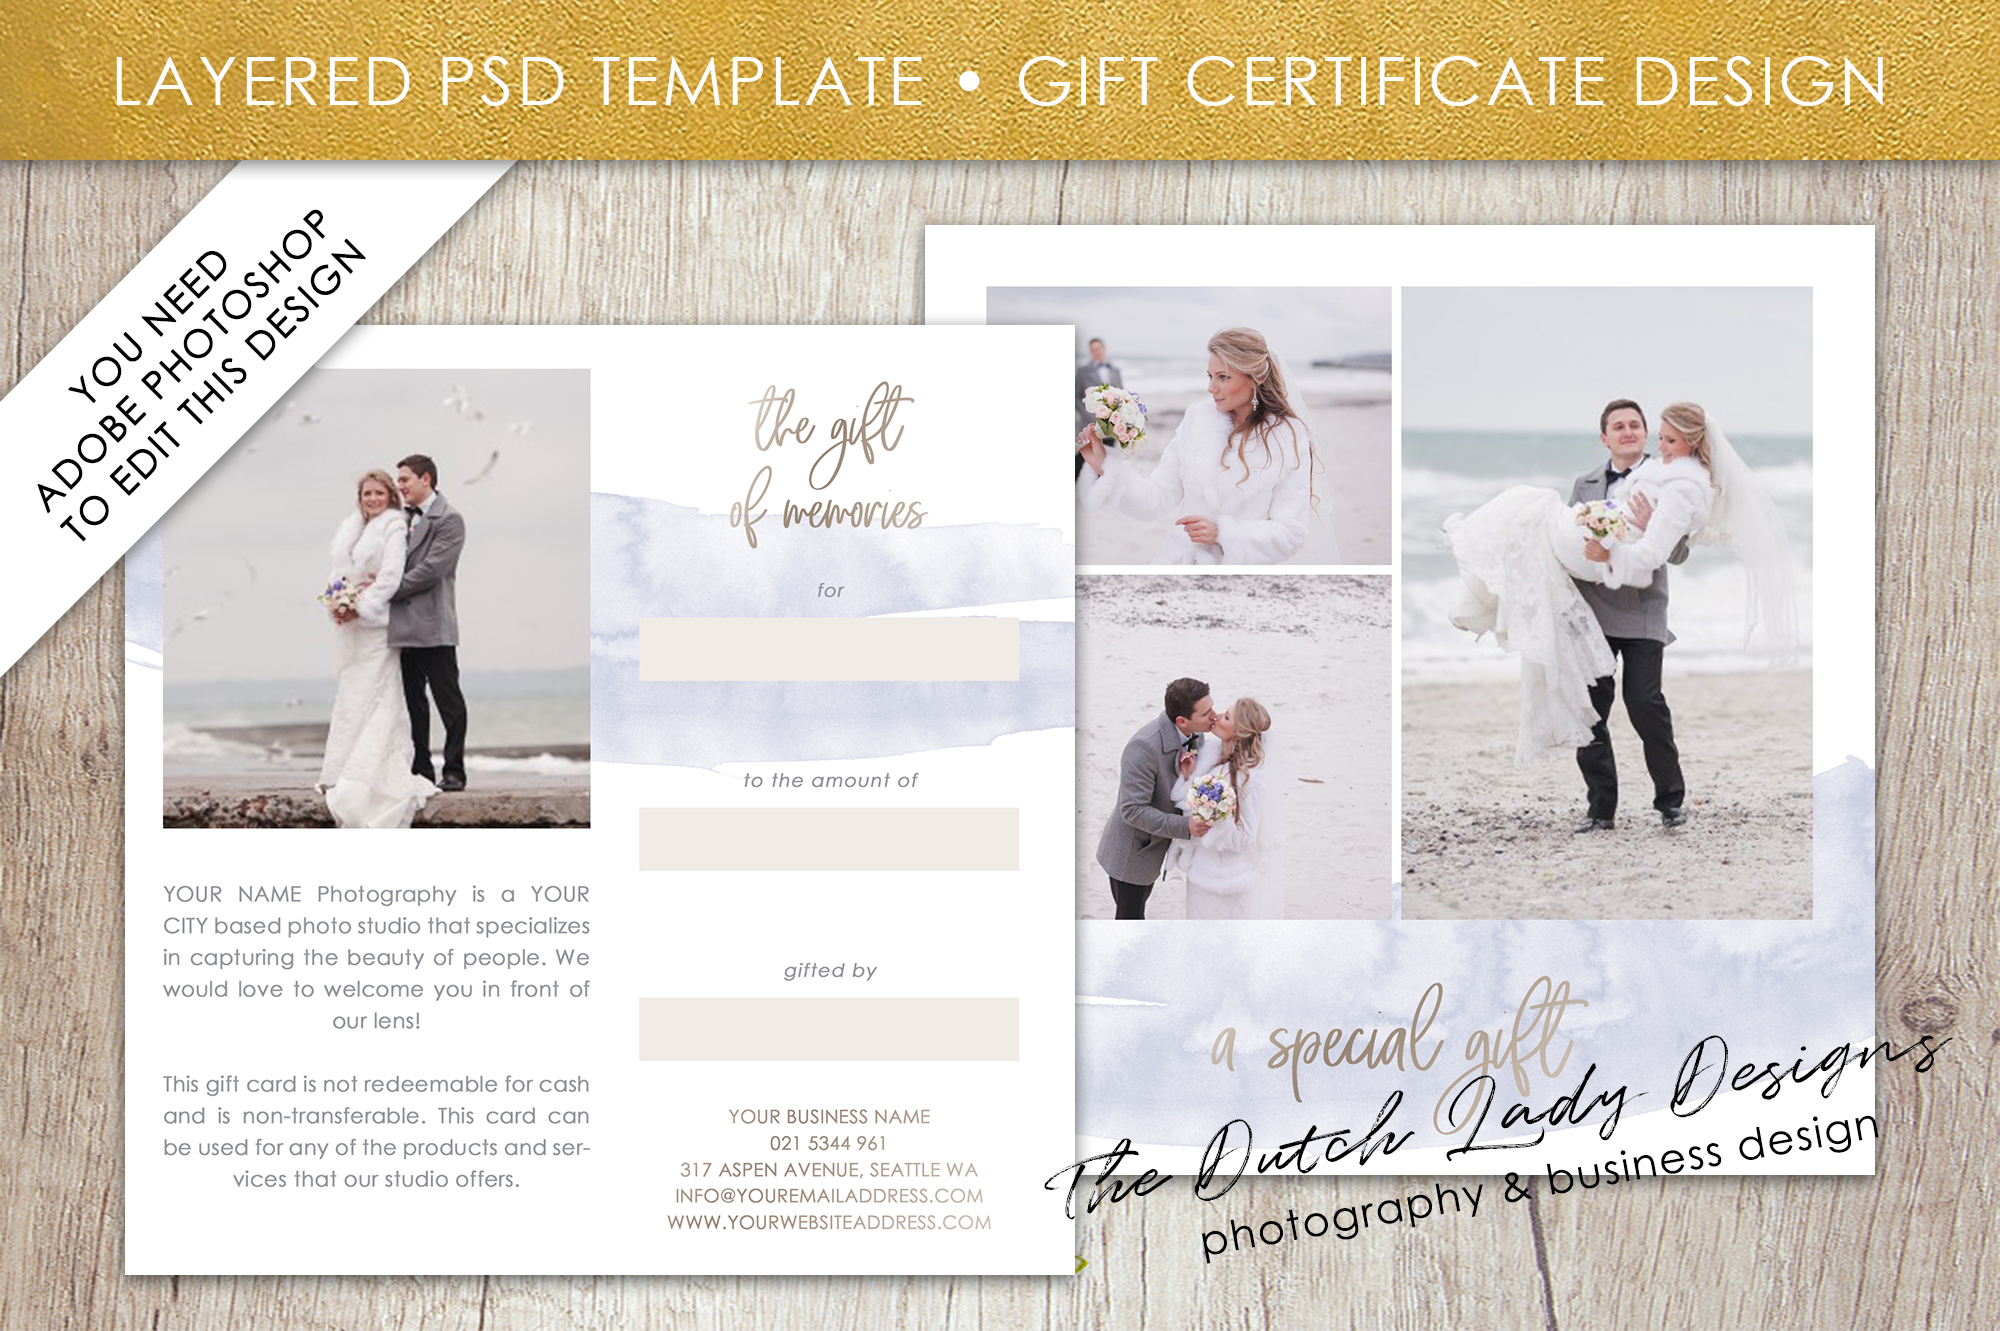 Photo gift card template for adobe phot design bundles photo gift card template for adobe photoshop layered psd template design 42 example yelopaper Gallery